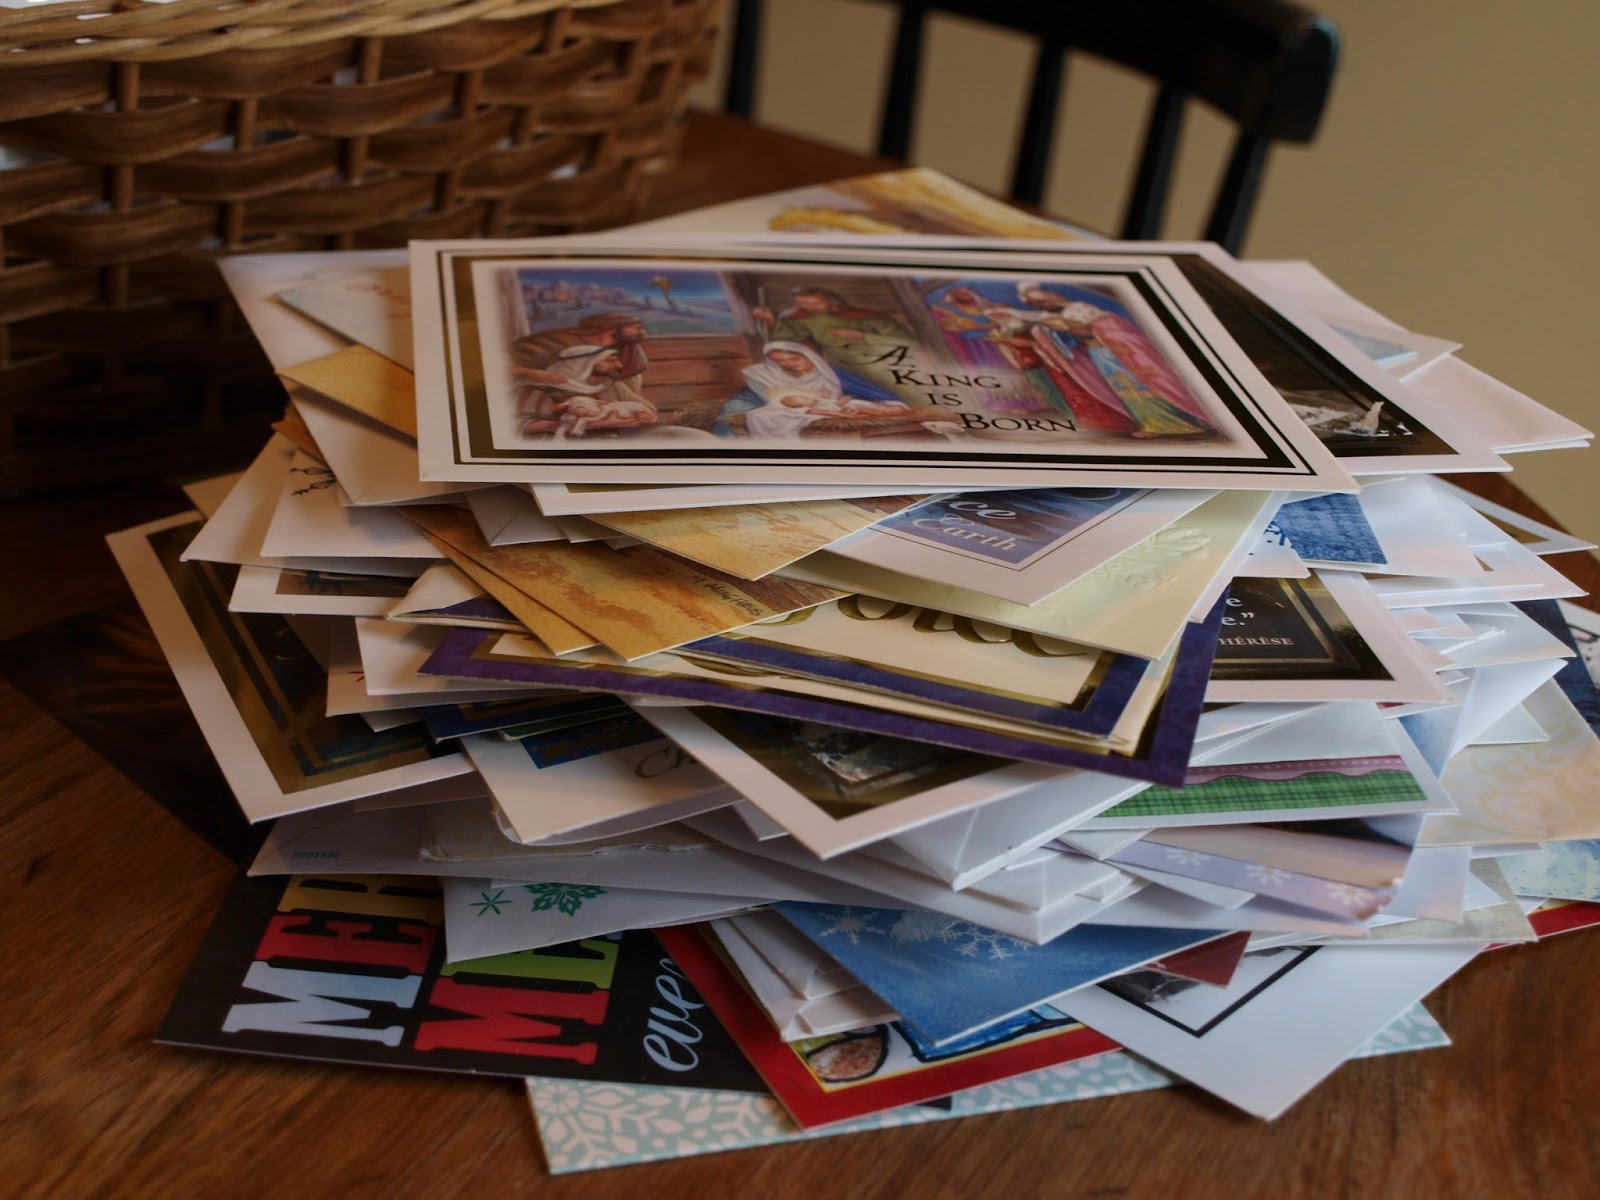 A YEAR OF JUBILEE REVIEWS: Christmas Cards, Why send them?